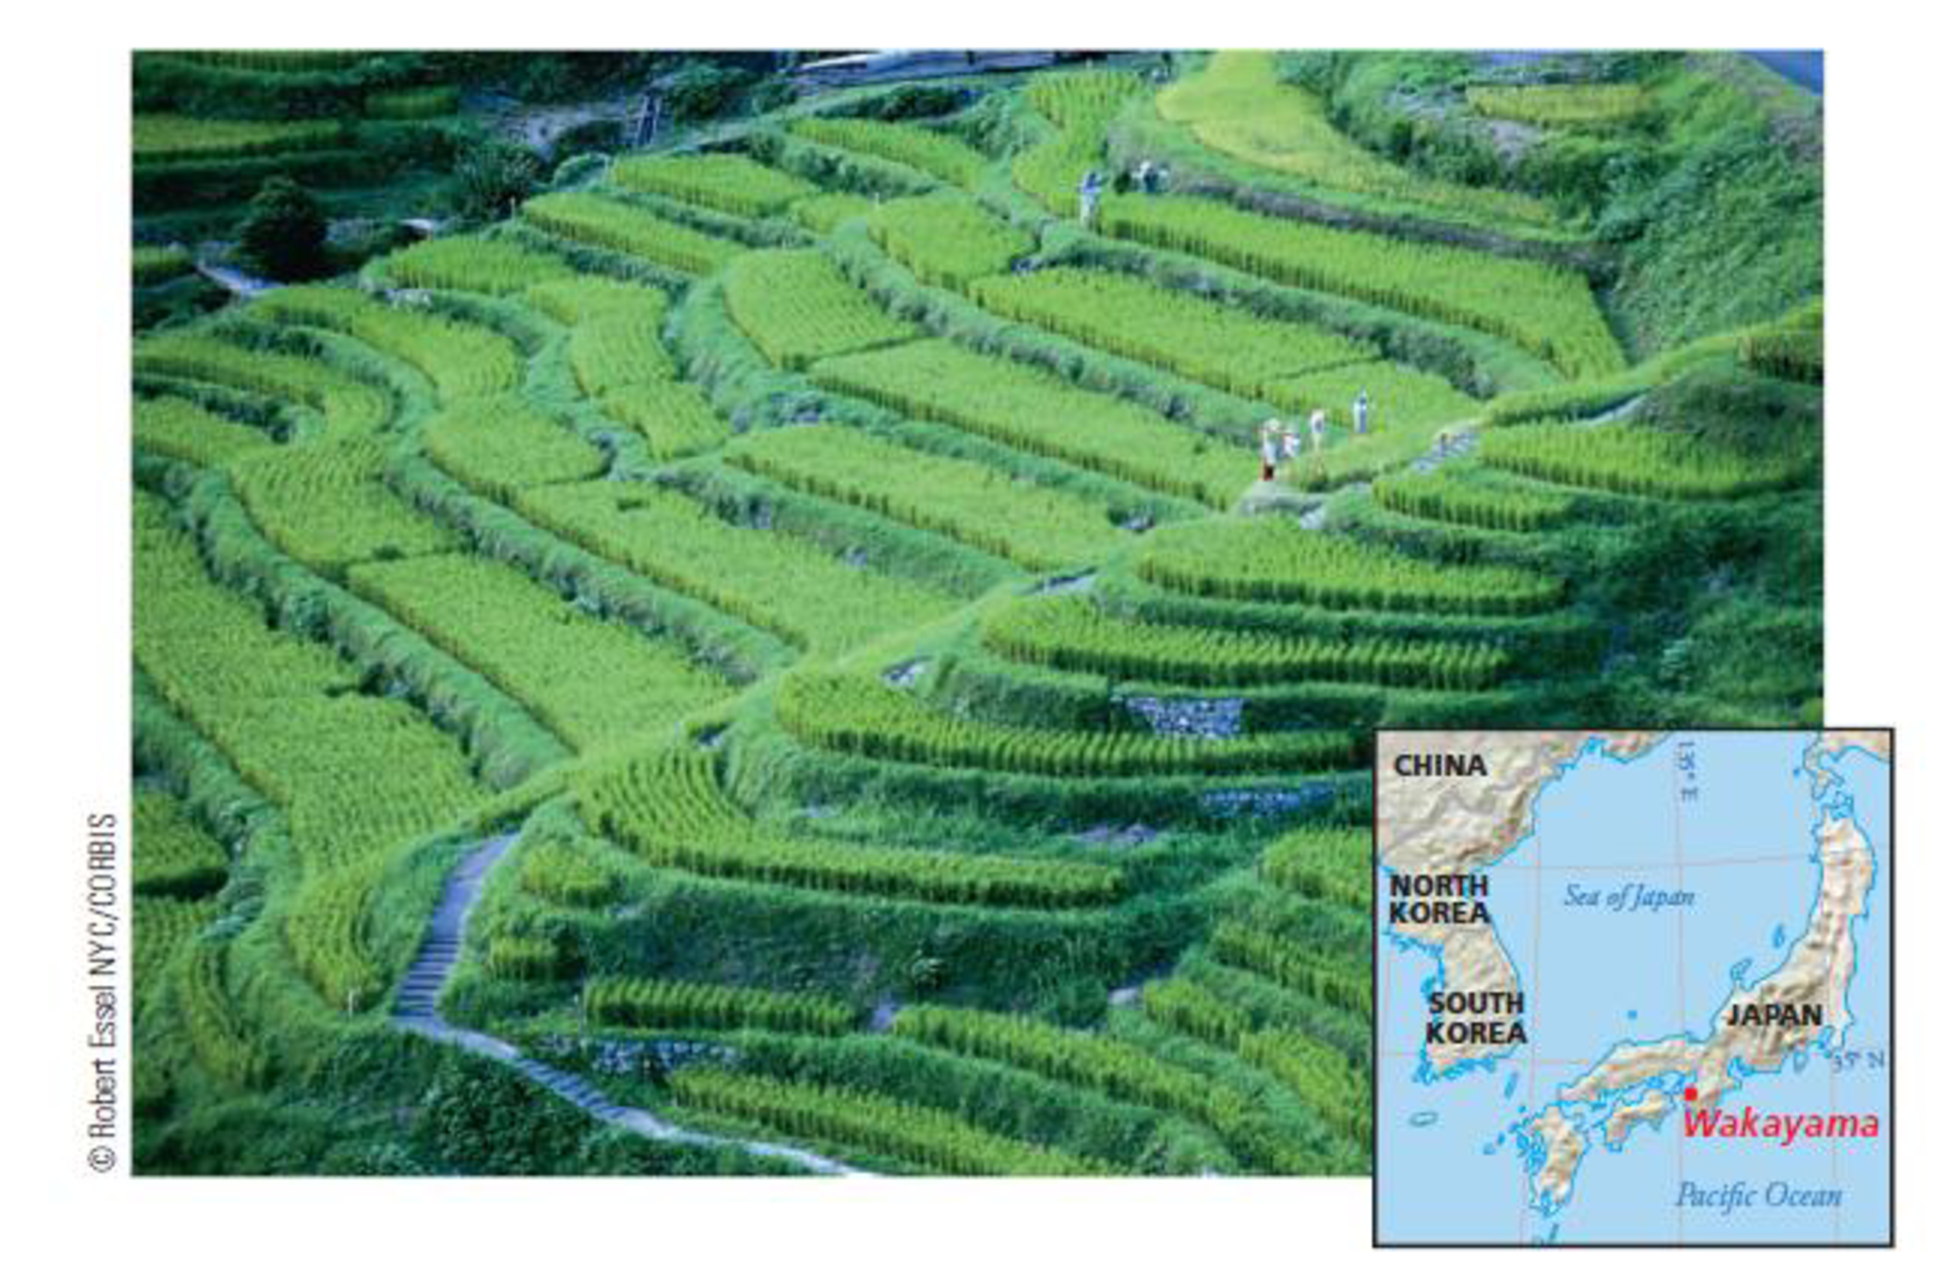 Chapter 7, Problem 28FQ, FIGURE 7.28 The terraced fields in this humid subtropical climate region near Wakayama, Japan, are